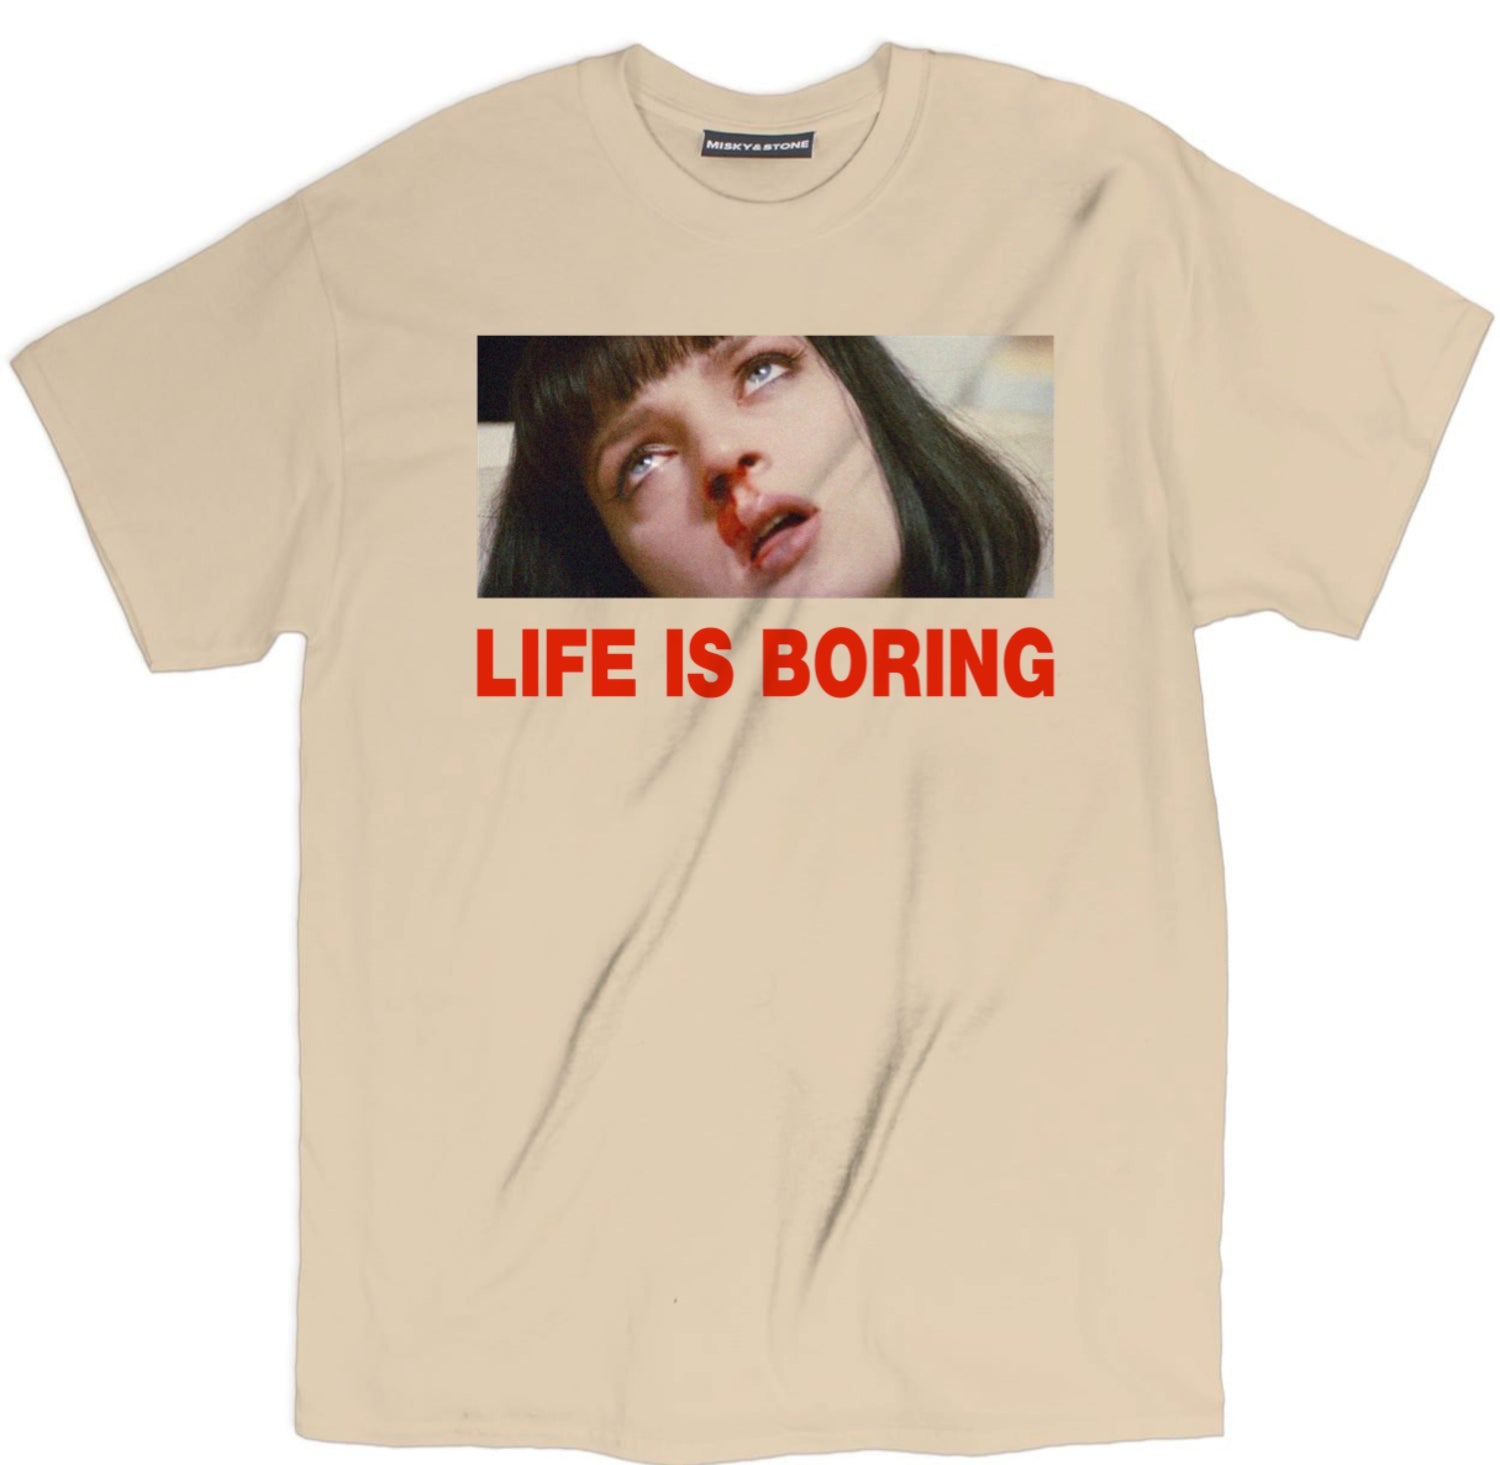 life is boring t shirt, life is boring shirt, life is boring tee, movie t shits,